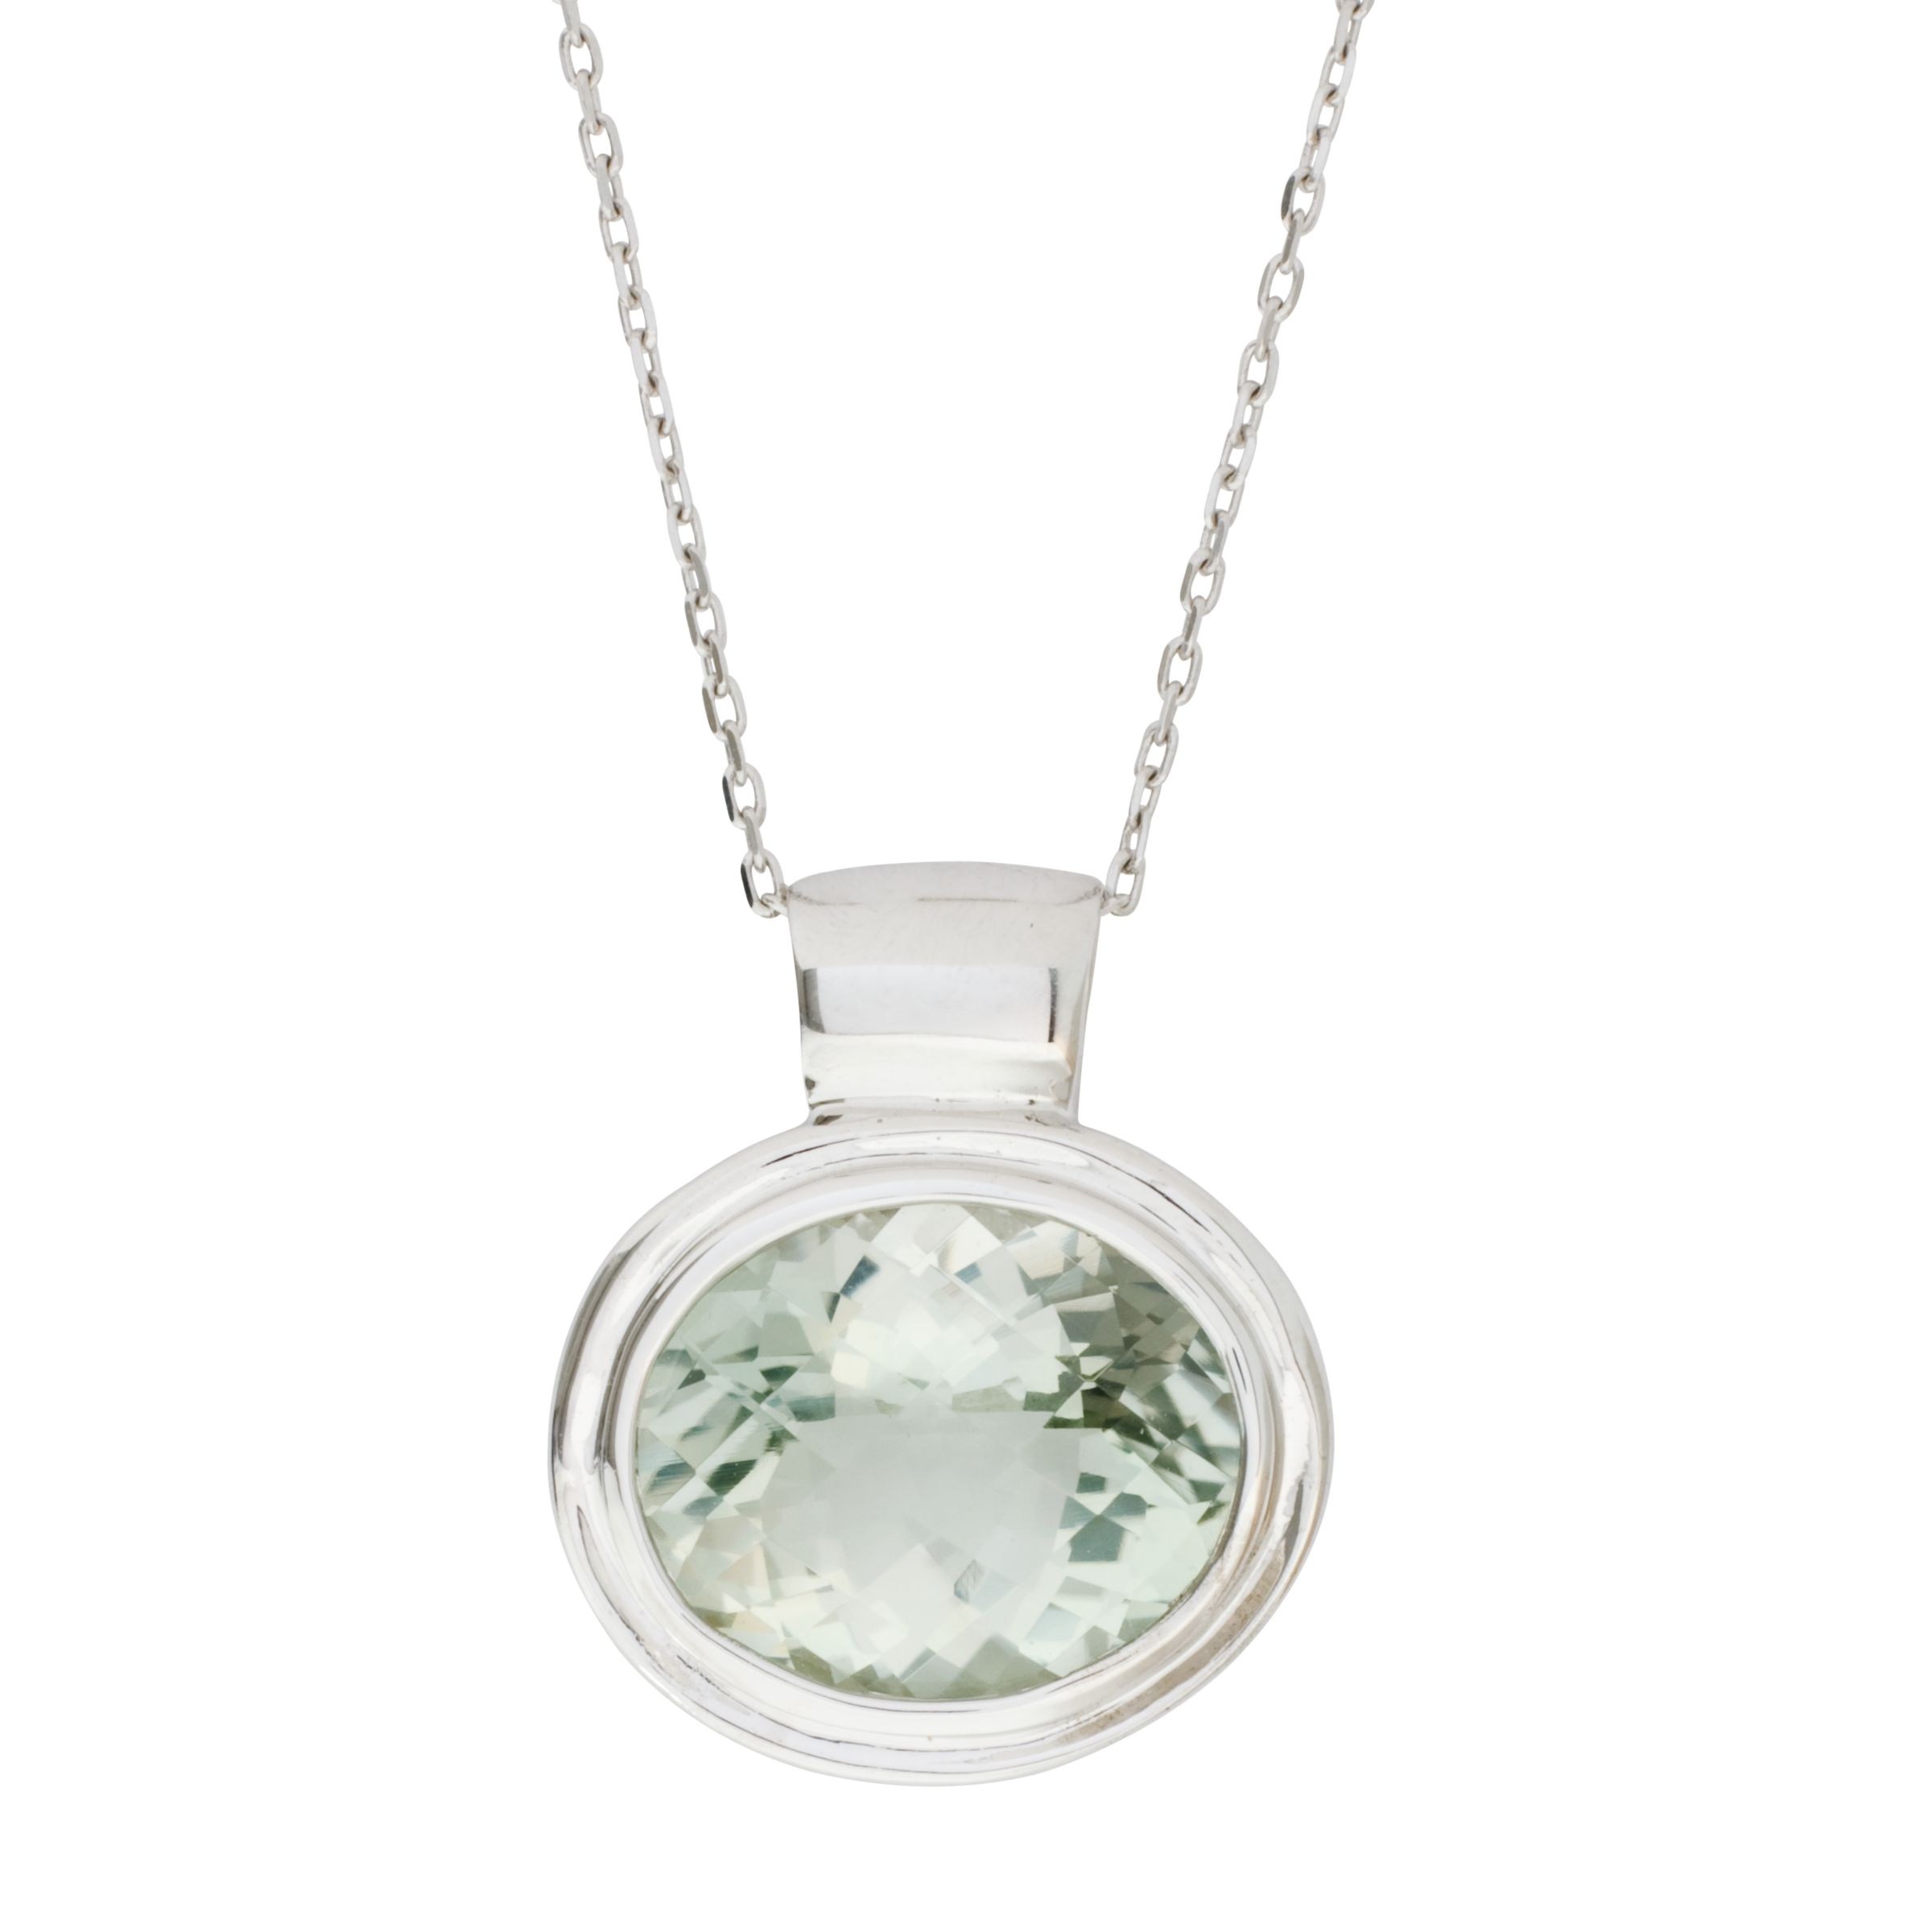 London Road White Gold Green Amethyst Pendant Necklace